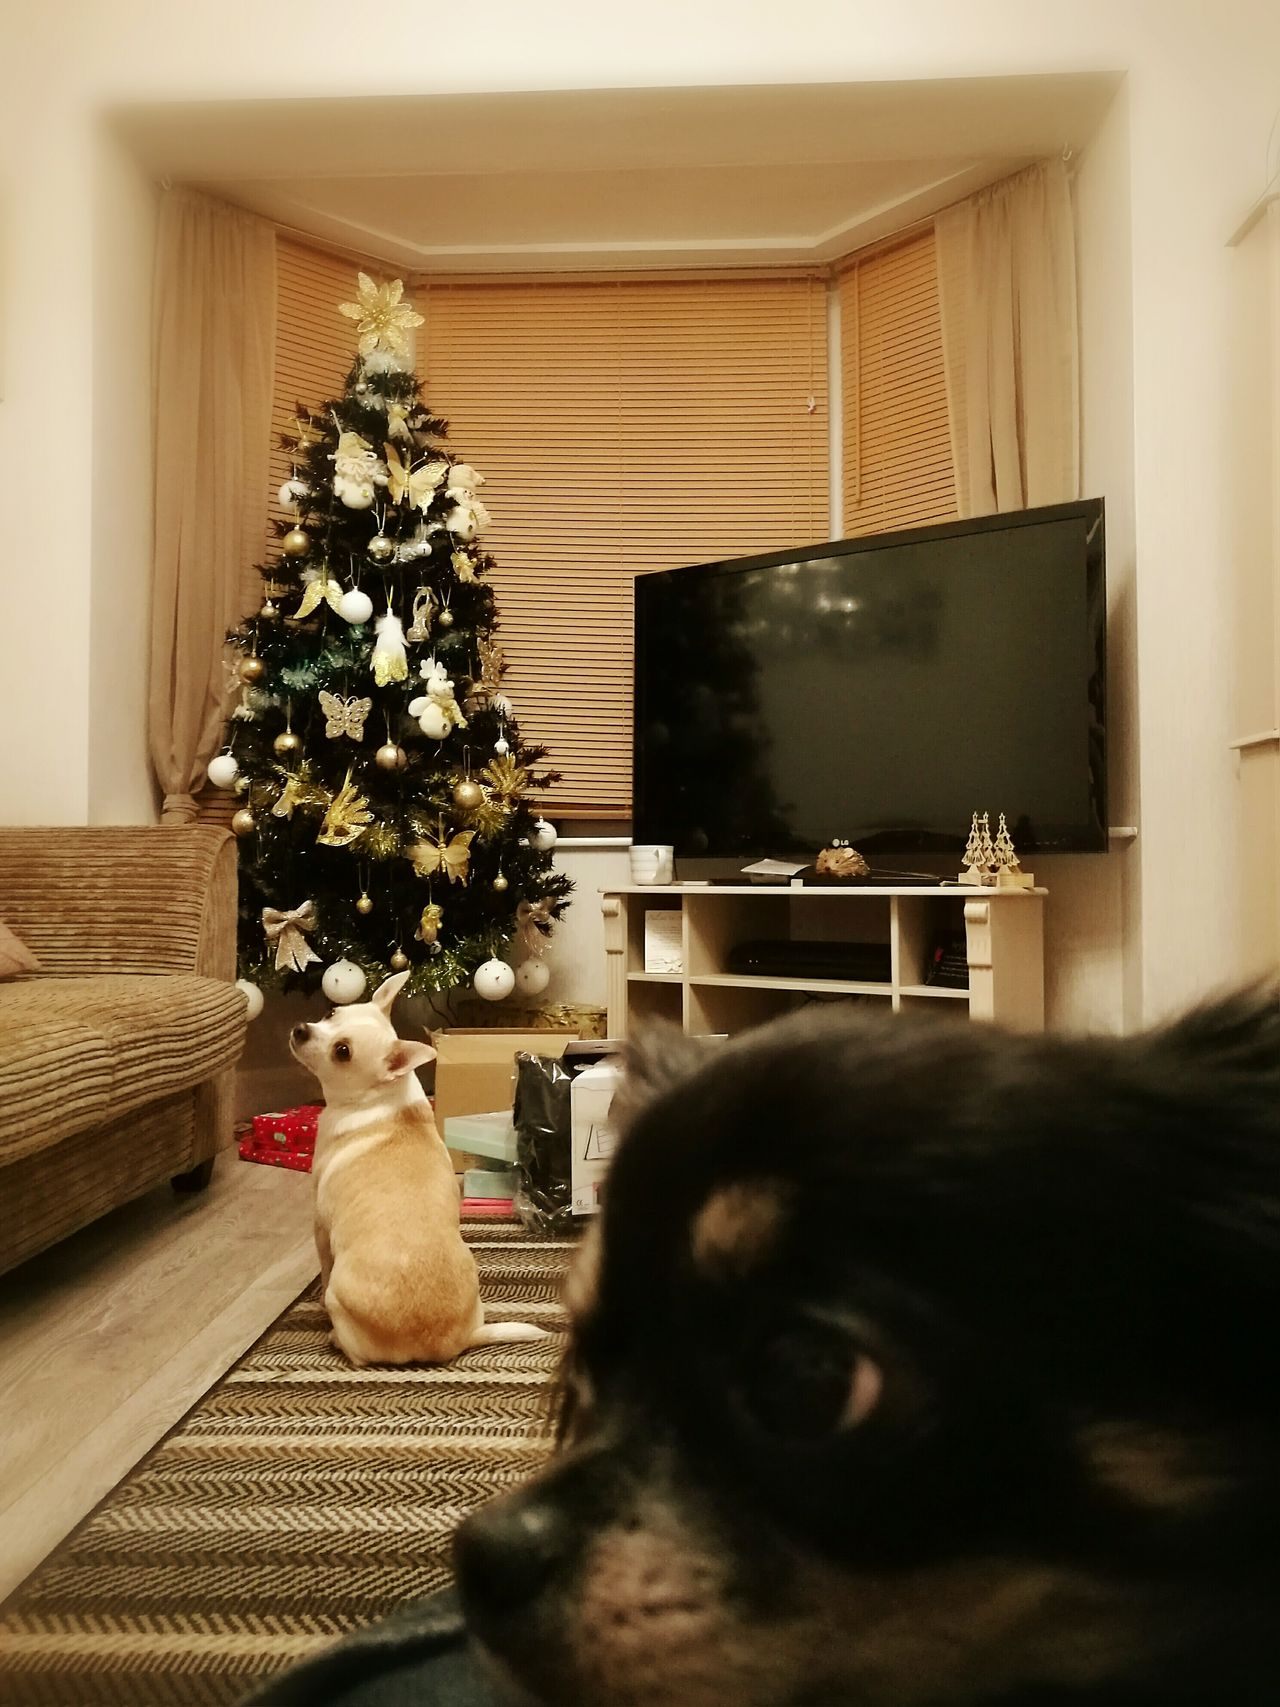 Chihuahua Chihuahua Love ♥ Christmas Christmas Tree Pets Living Room Christmas Day